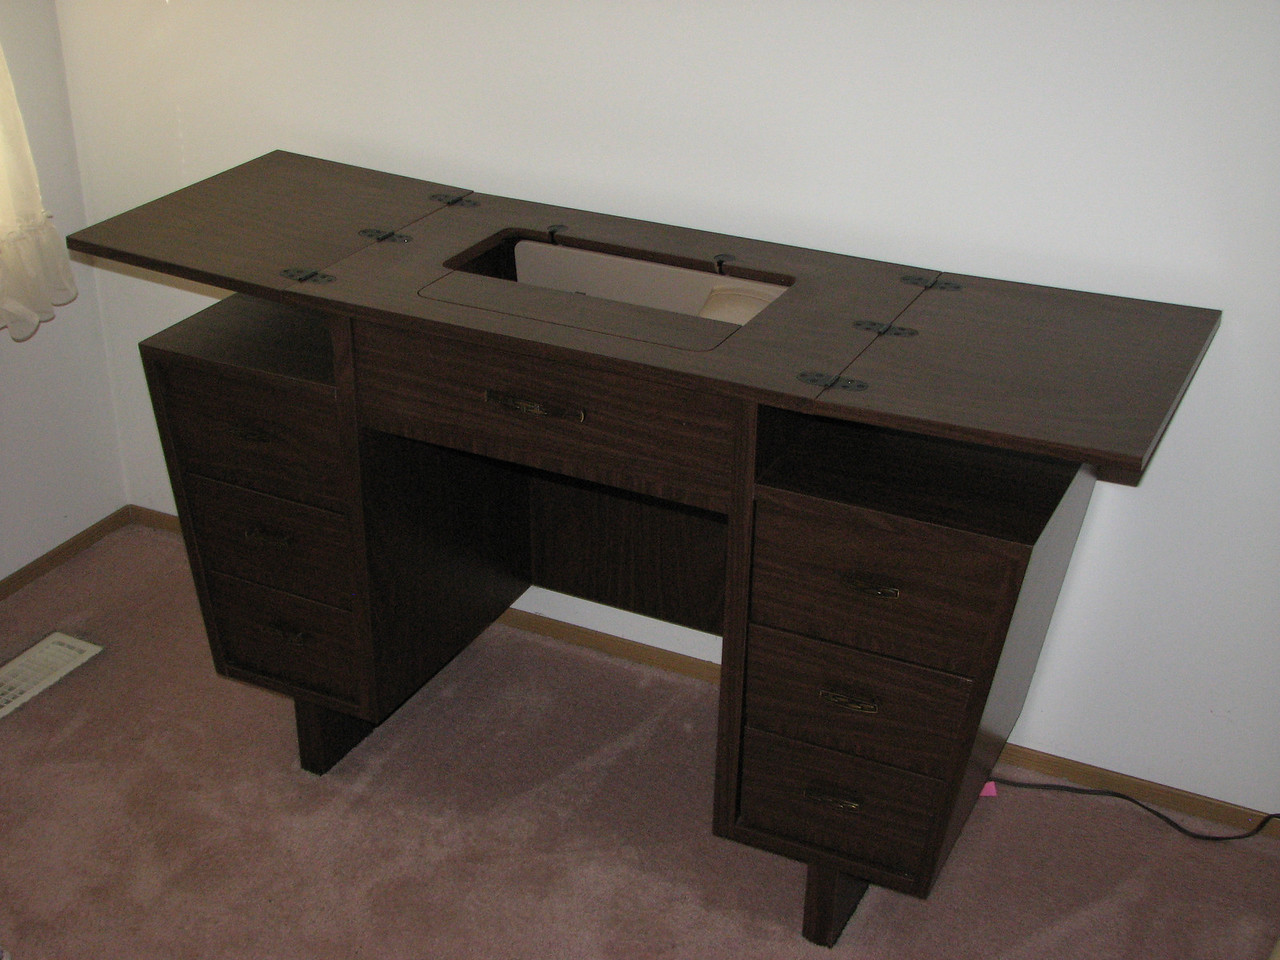 20111009_VL furniture_10